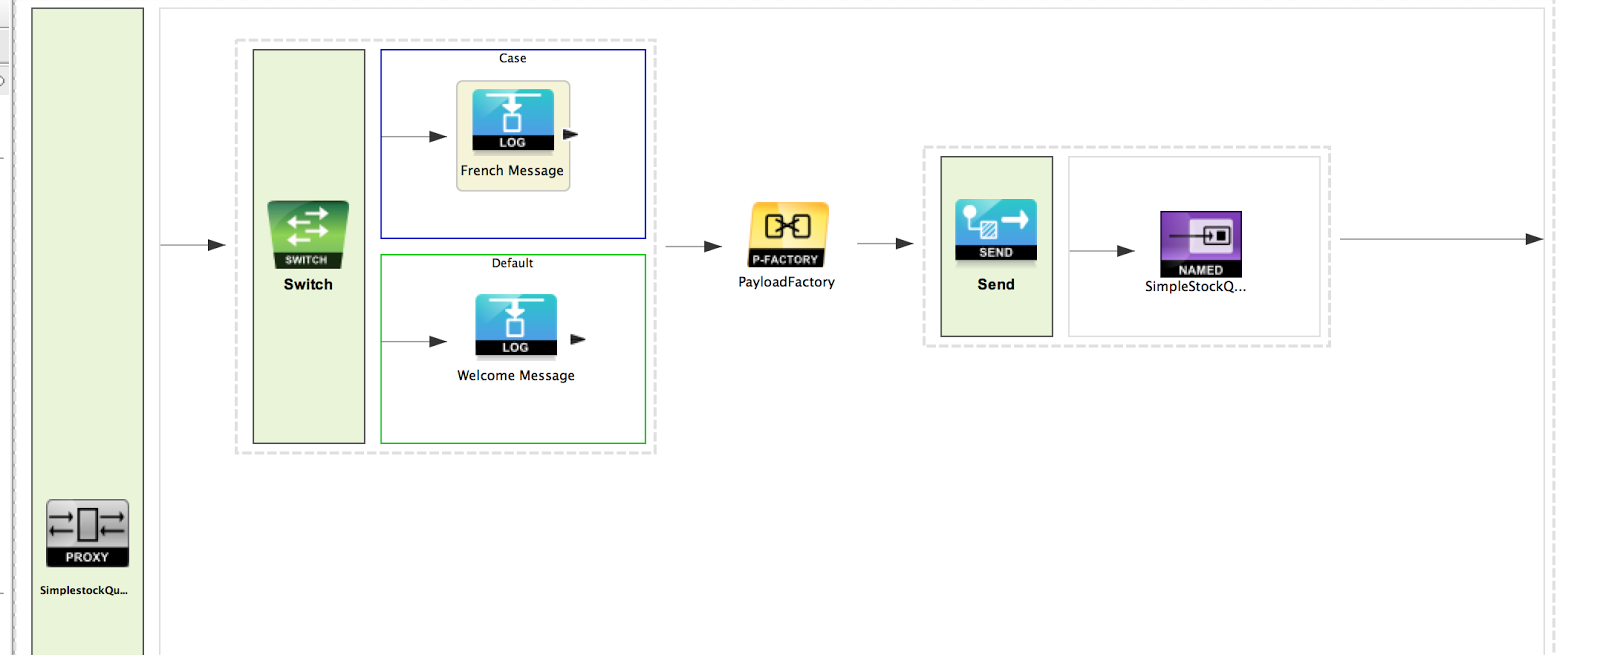 Canvas in Developer Studio with PayloadFactory mediator added between the Switch mediator and the first Send mediator